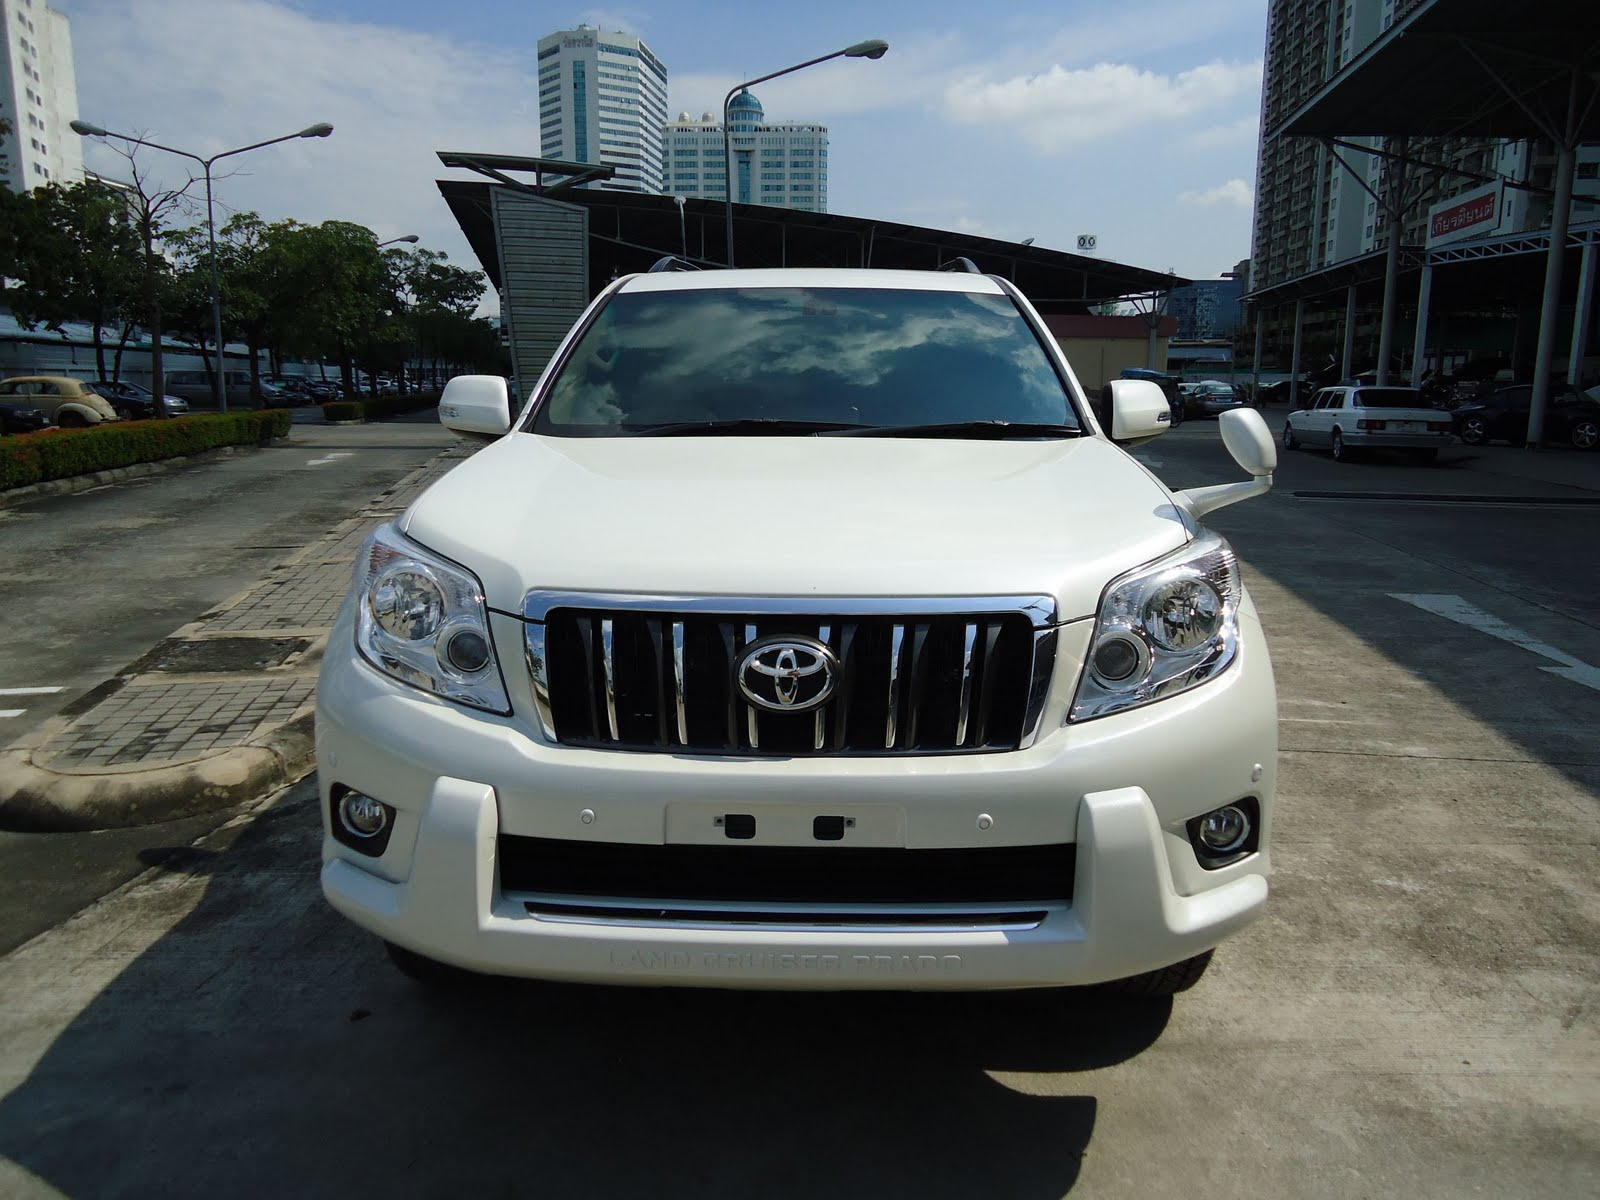 Toyota Land Cruiser Prado 2.7 2010 photo - 5